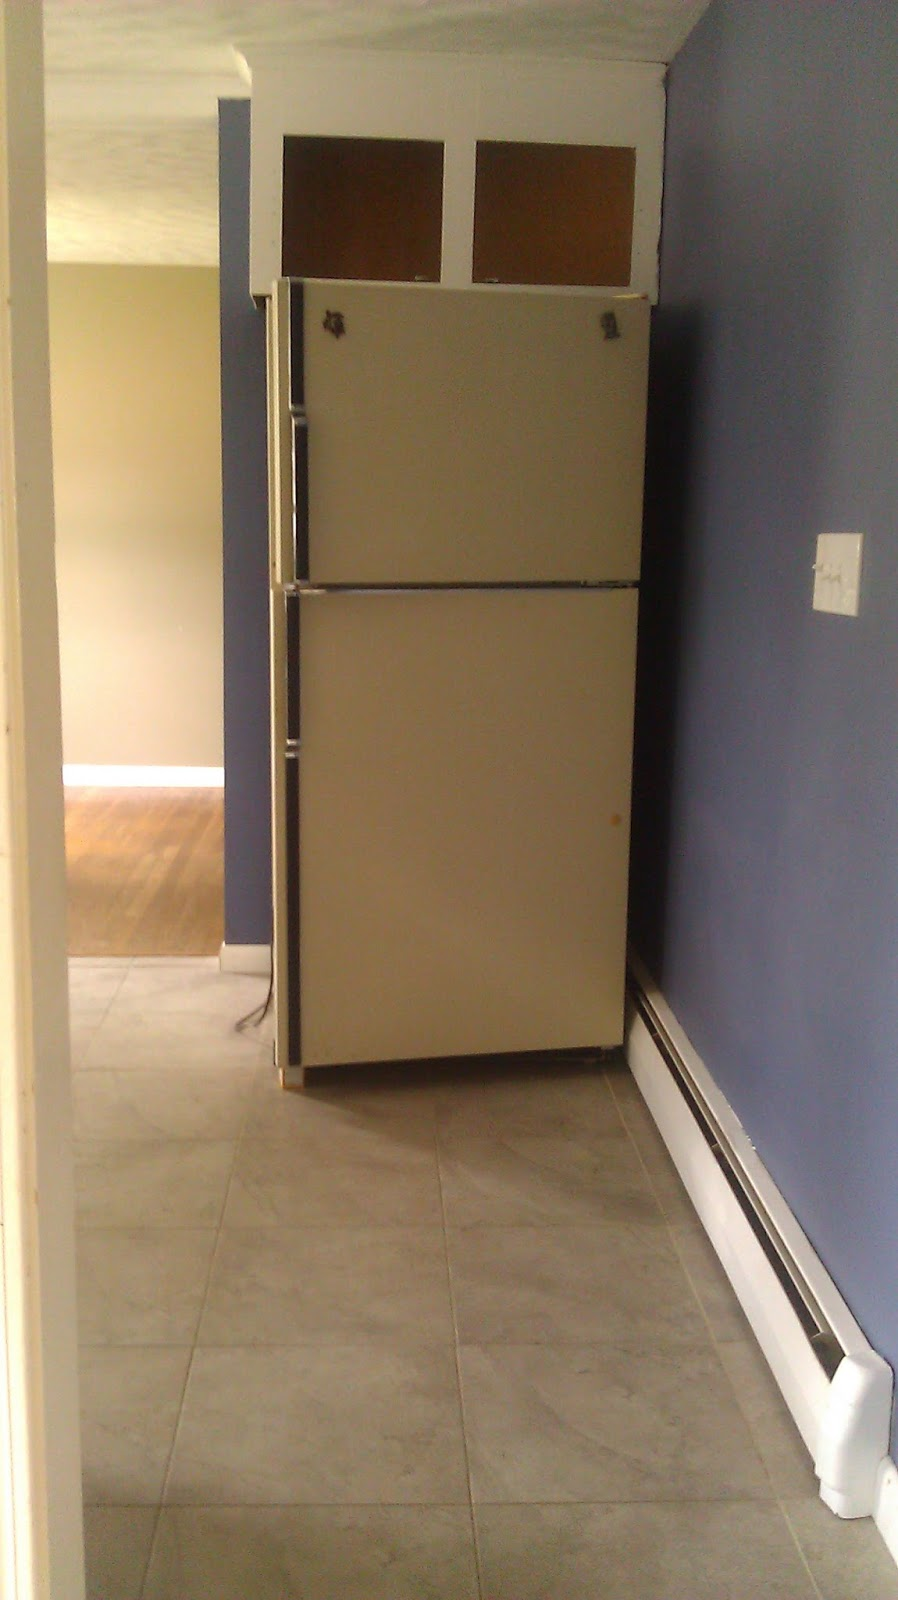 lilly s home designs trones in the kitchen we switched out the old refrigerator that came with the house with a stainless steel one and we added a little floating recycling center on the wall to make